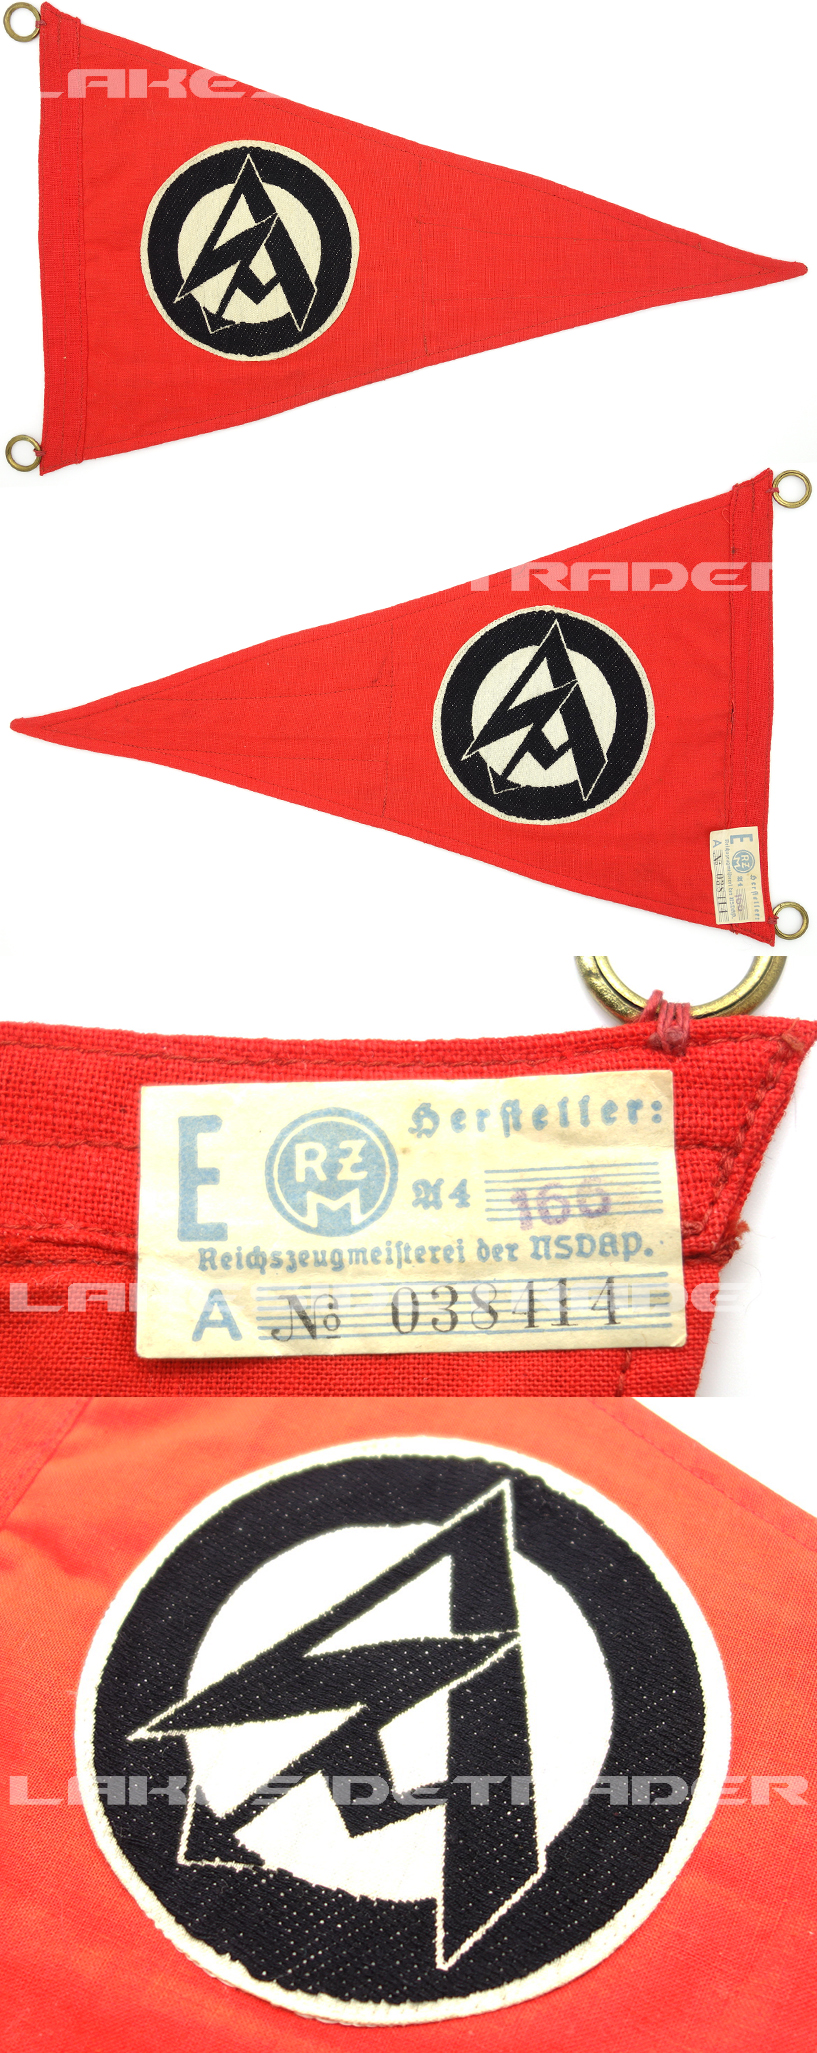 Tagged - SA Vehicle ID Pennant